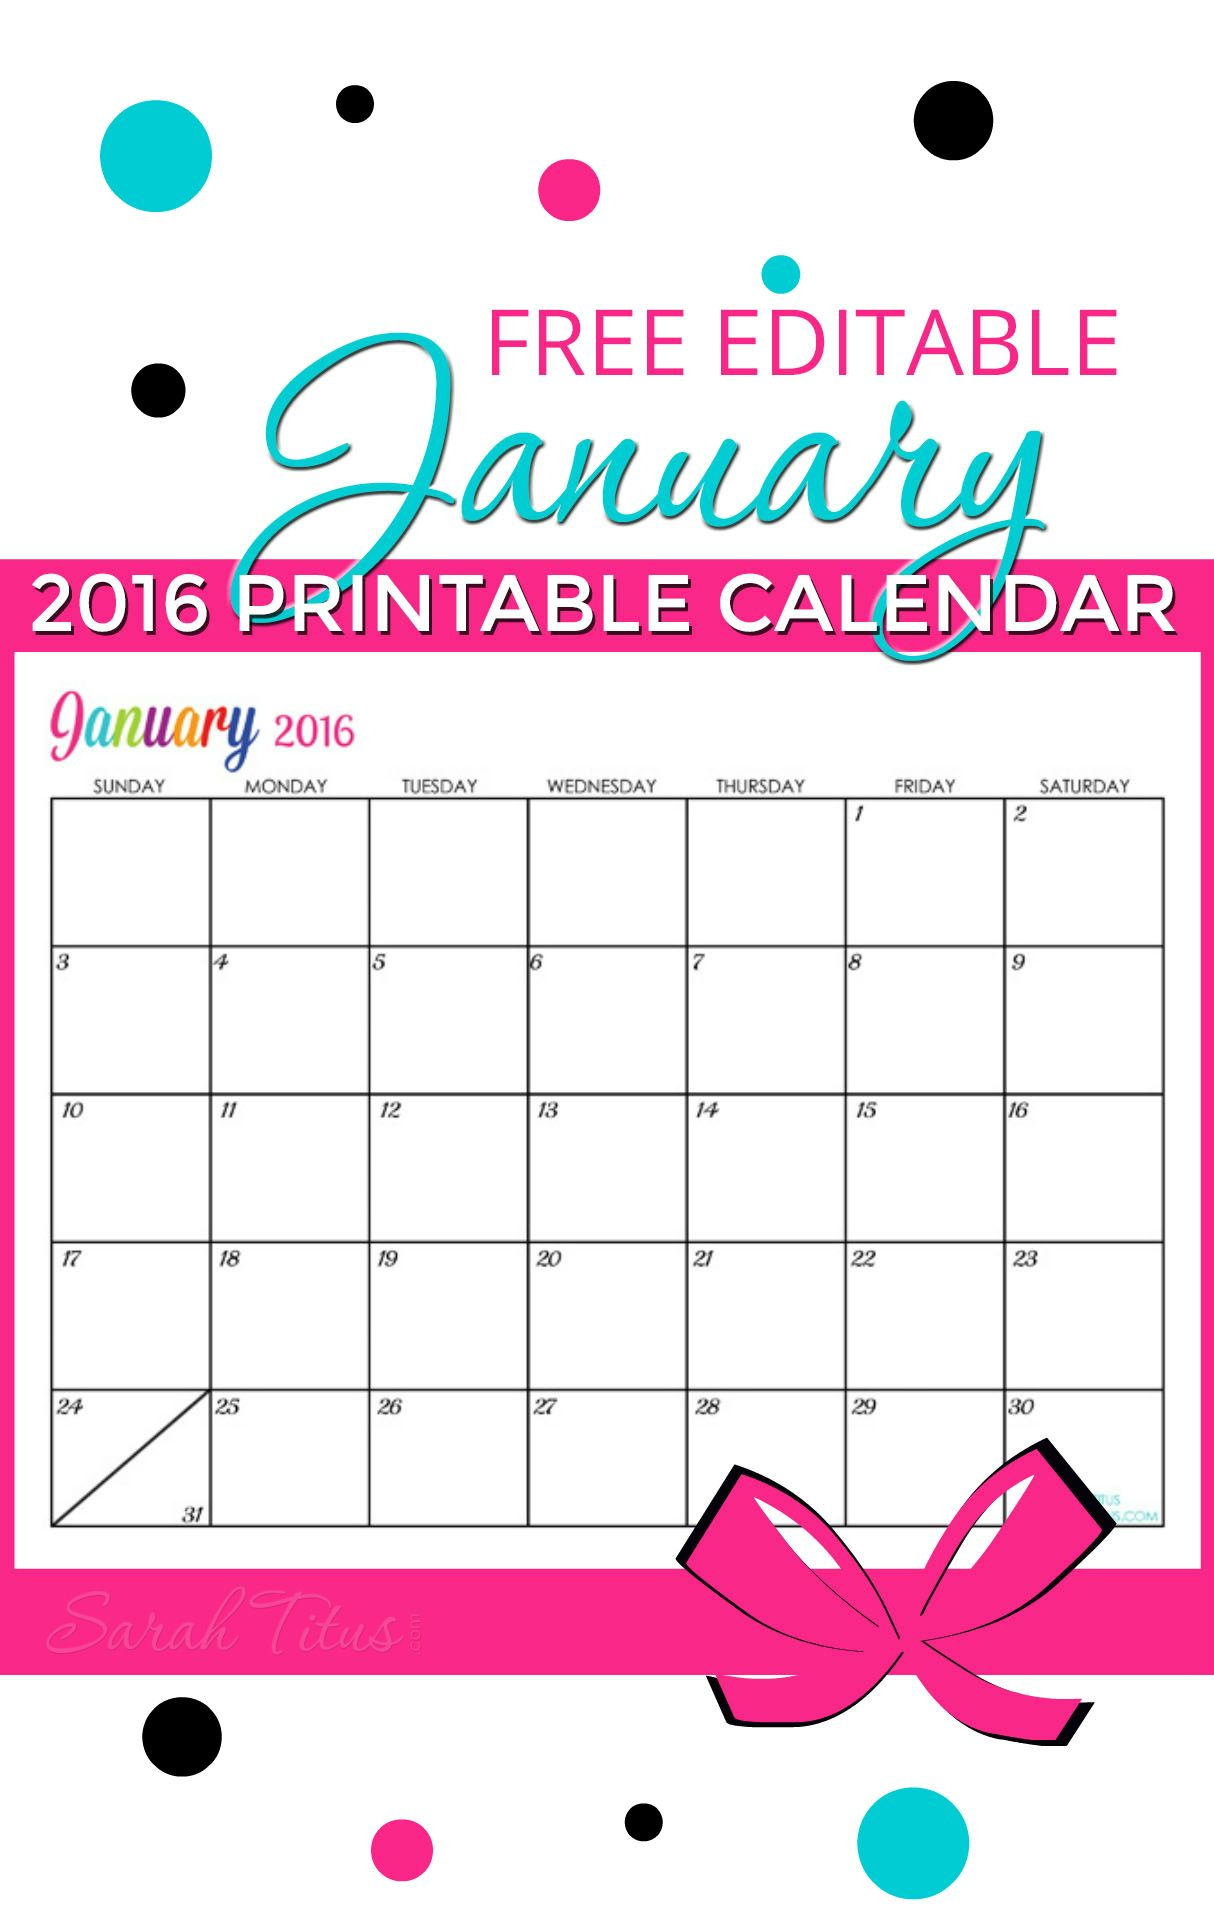 Great for menu planning, homeschooling, blogging, and